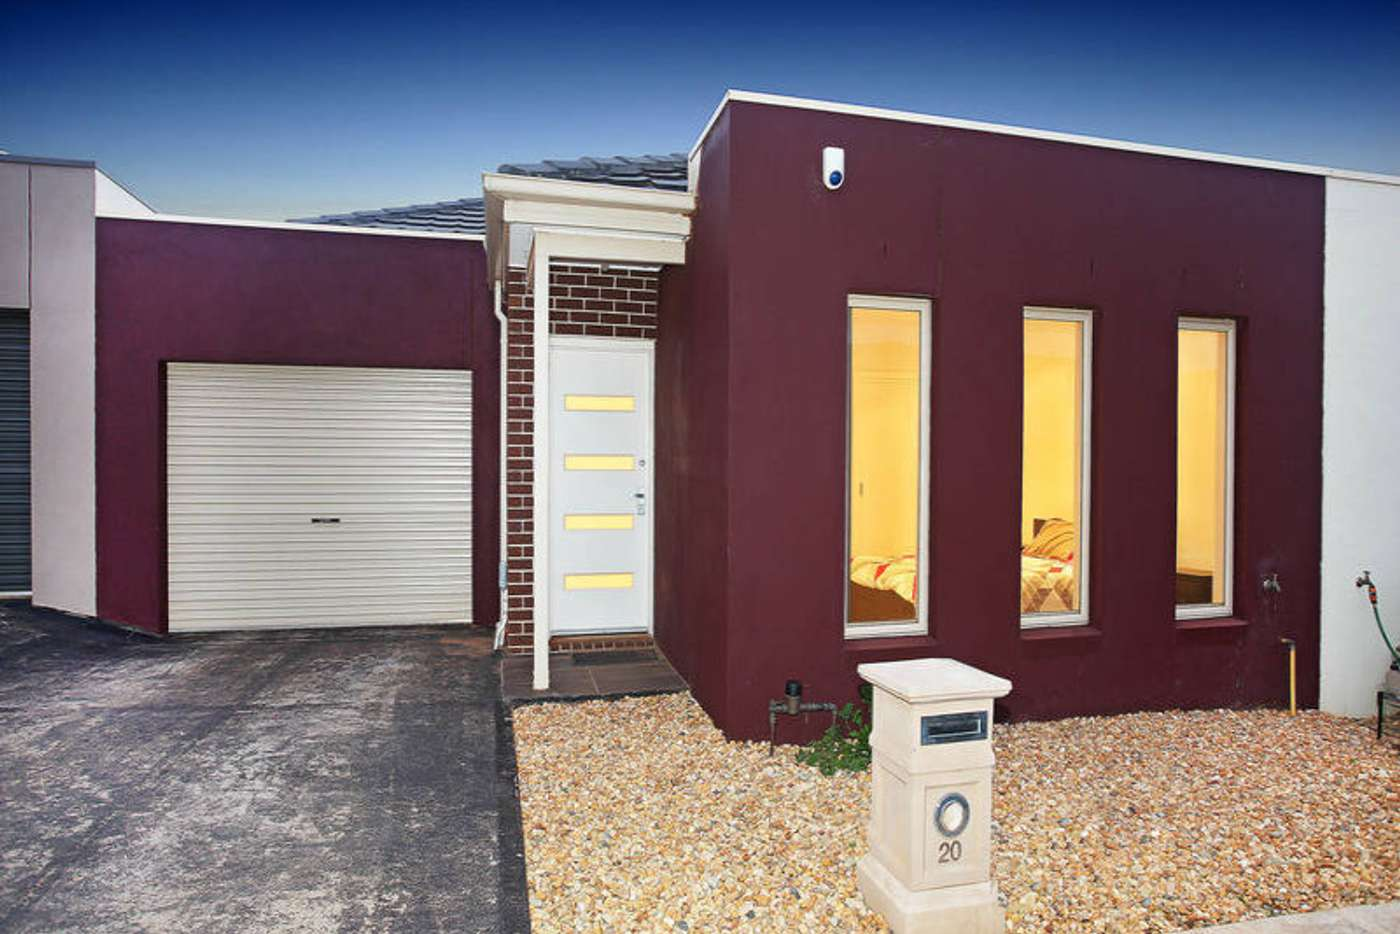 Main view of Homely unit listing, 20/40 Mccubbin Way, Caroline Springs VIC 3023